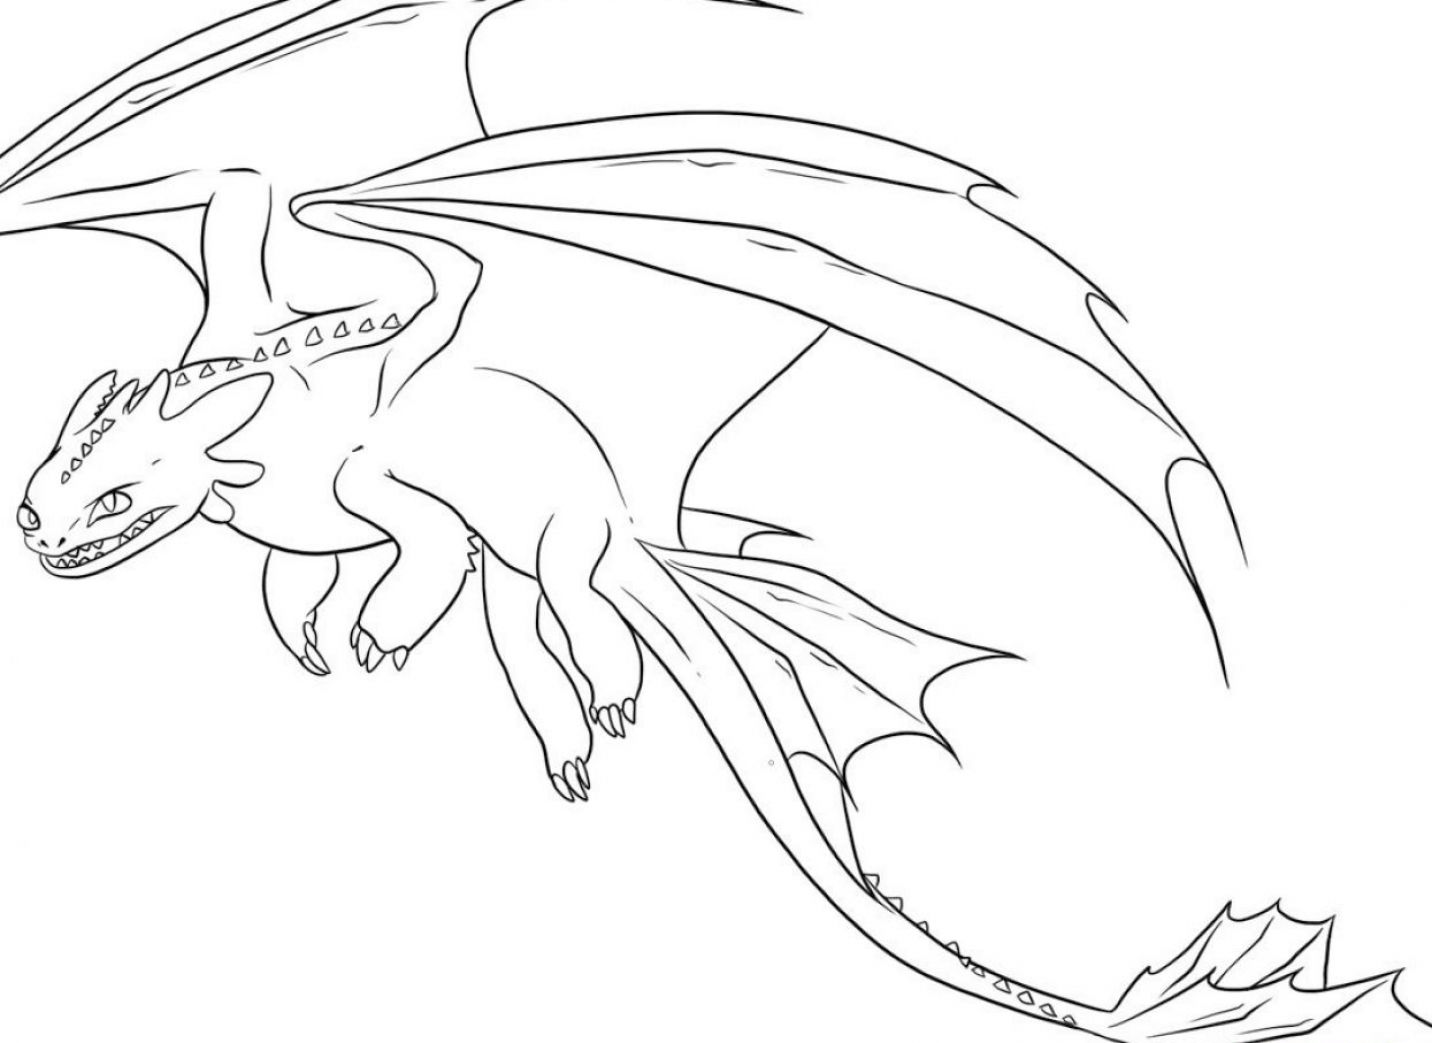 Free coloring pages realistic animals - Realistic Dragon Coloring Pages